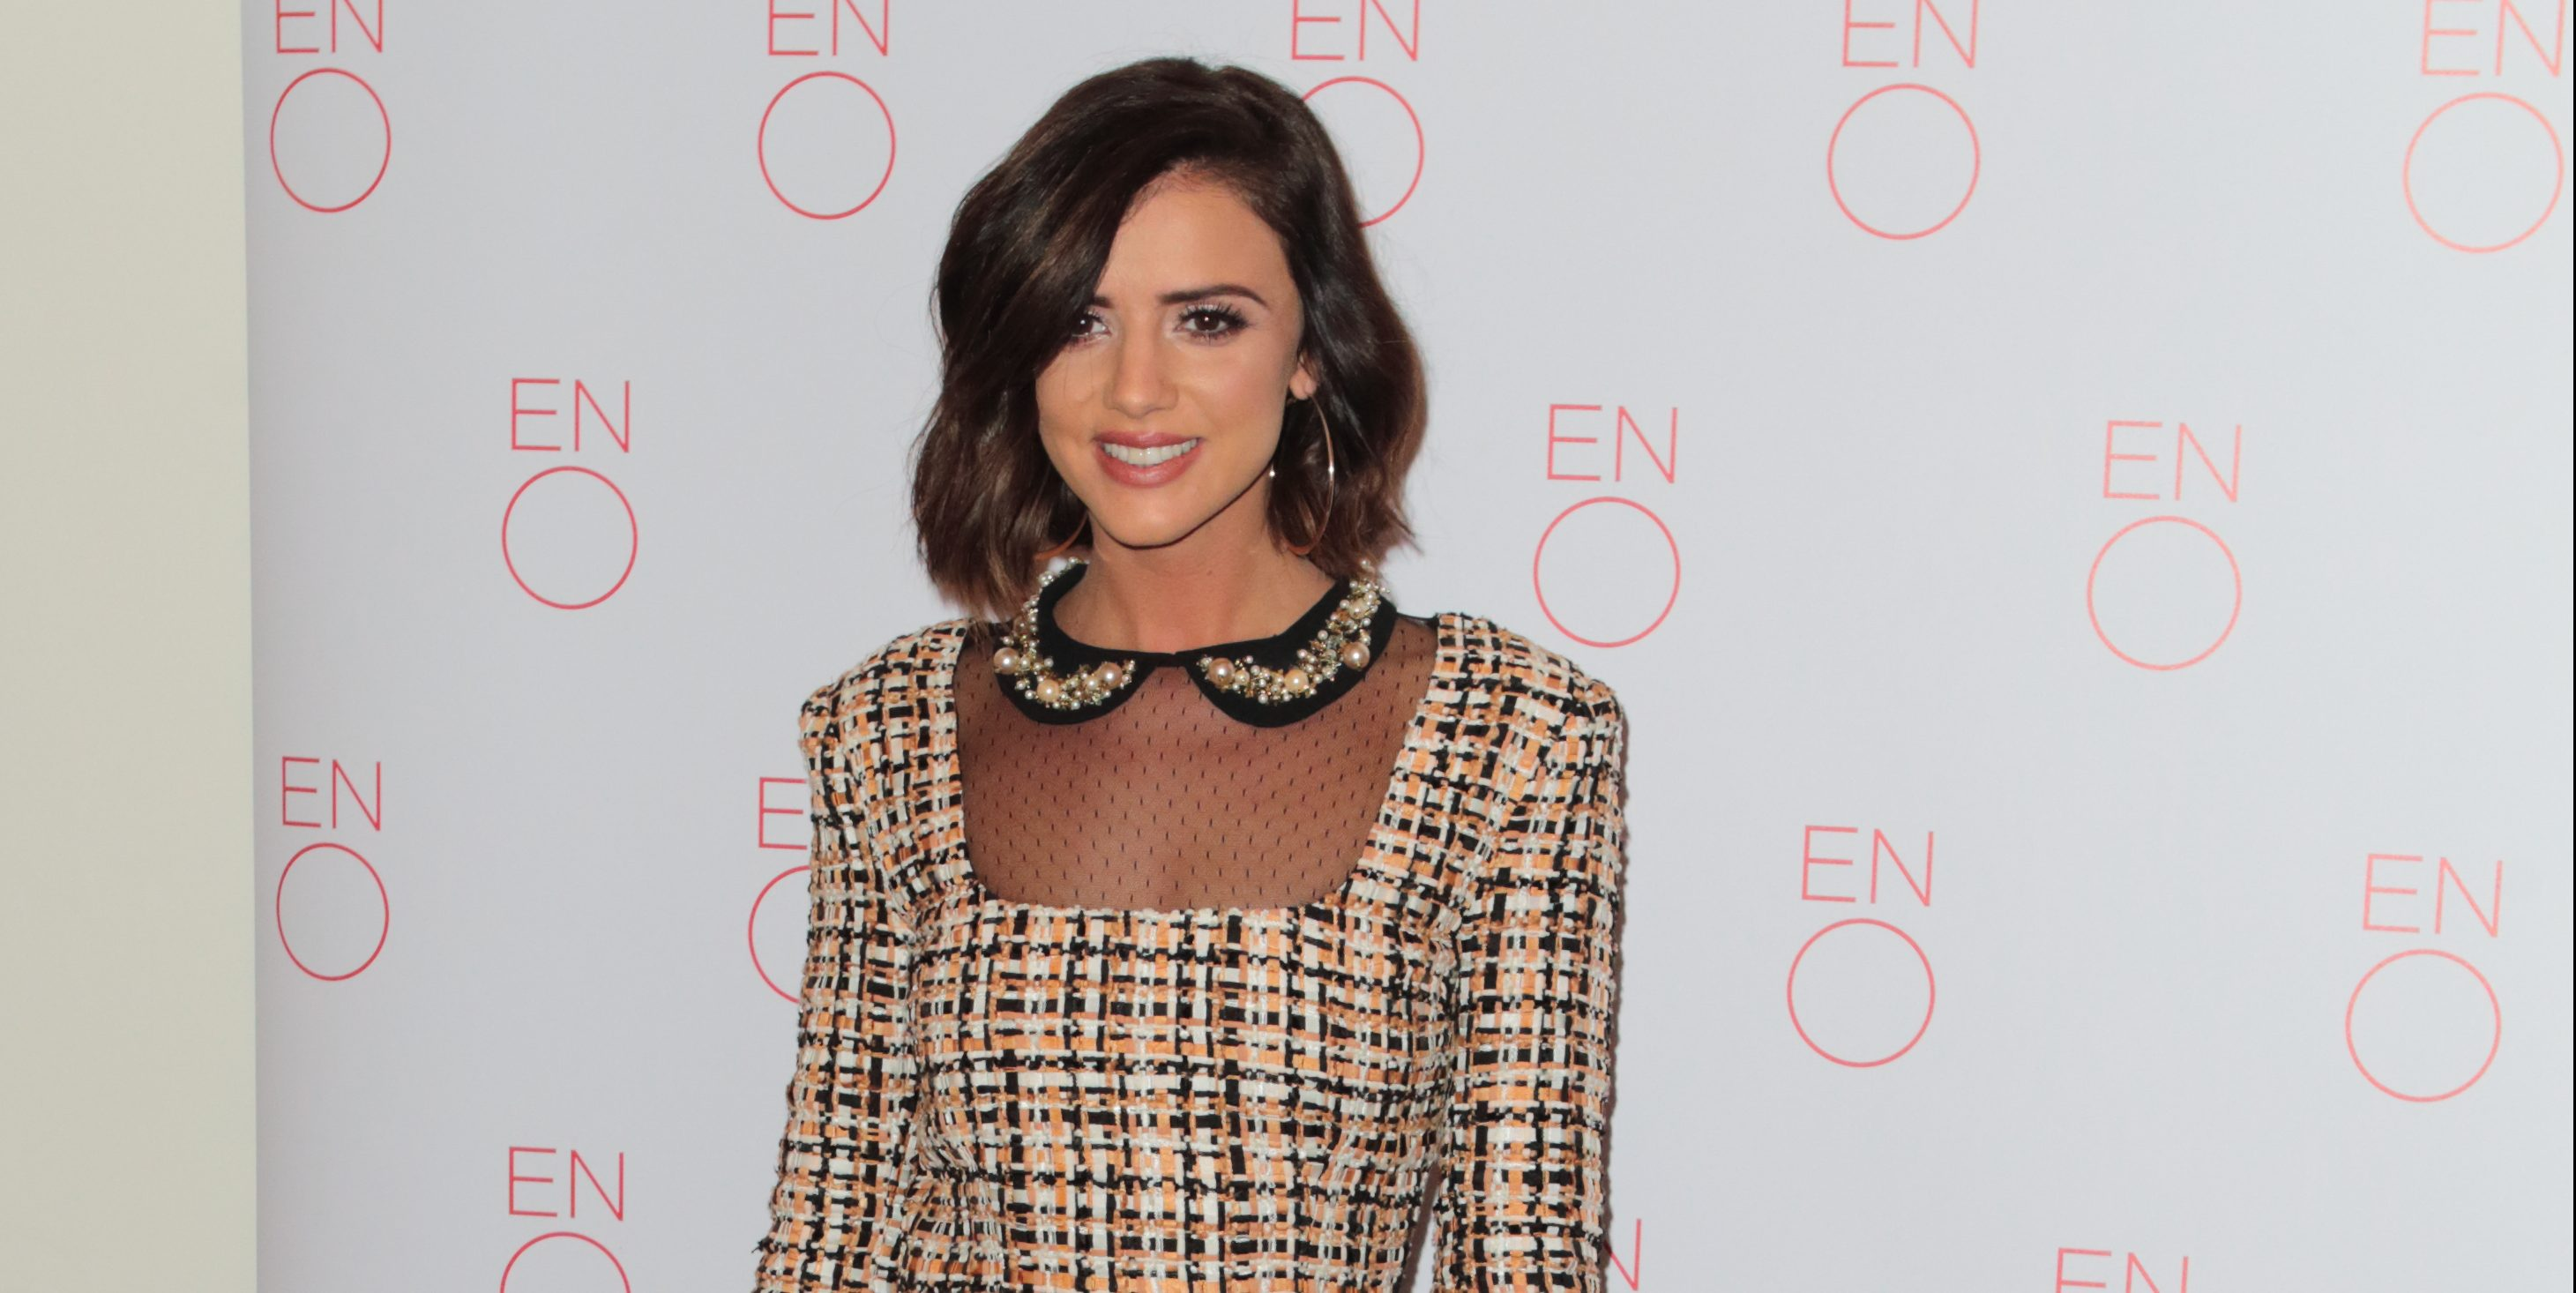 Lucy Mecklenburgh reveals 'unexpected surprises' of pregnancy as she enters third trimester